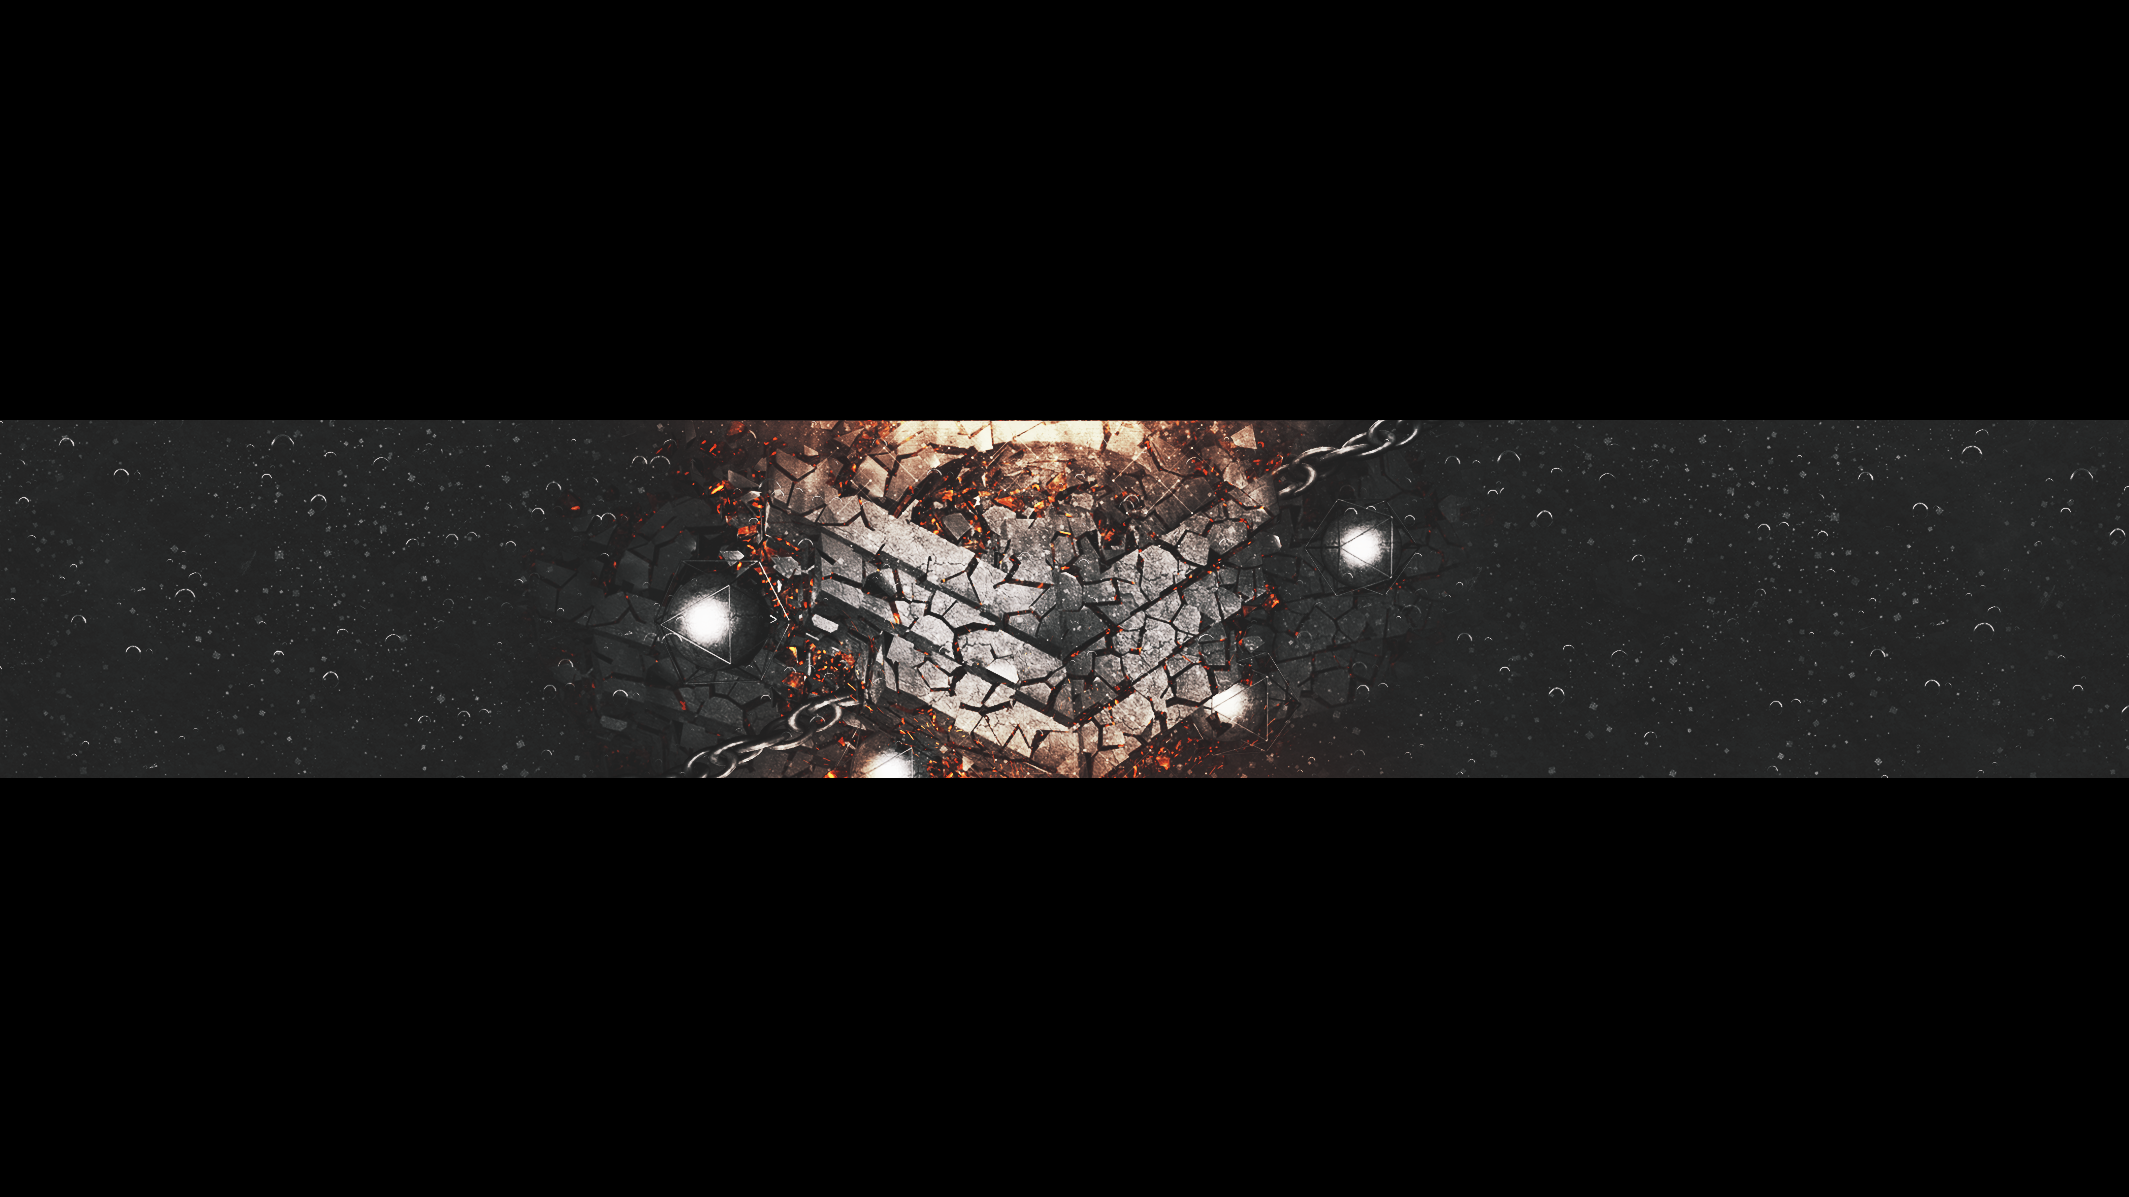 banner_by_spectrater-d7up61n.png